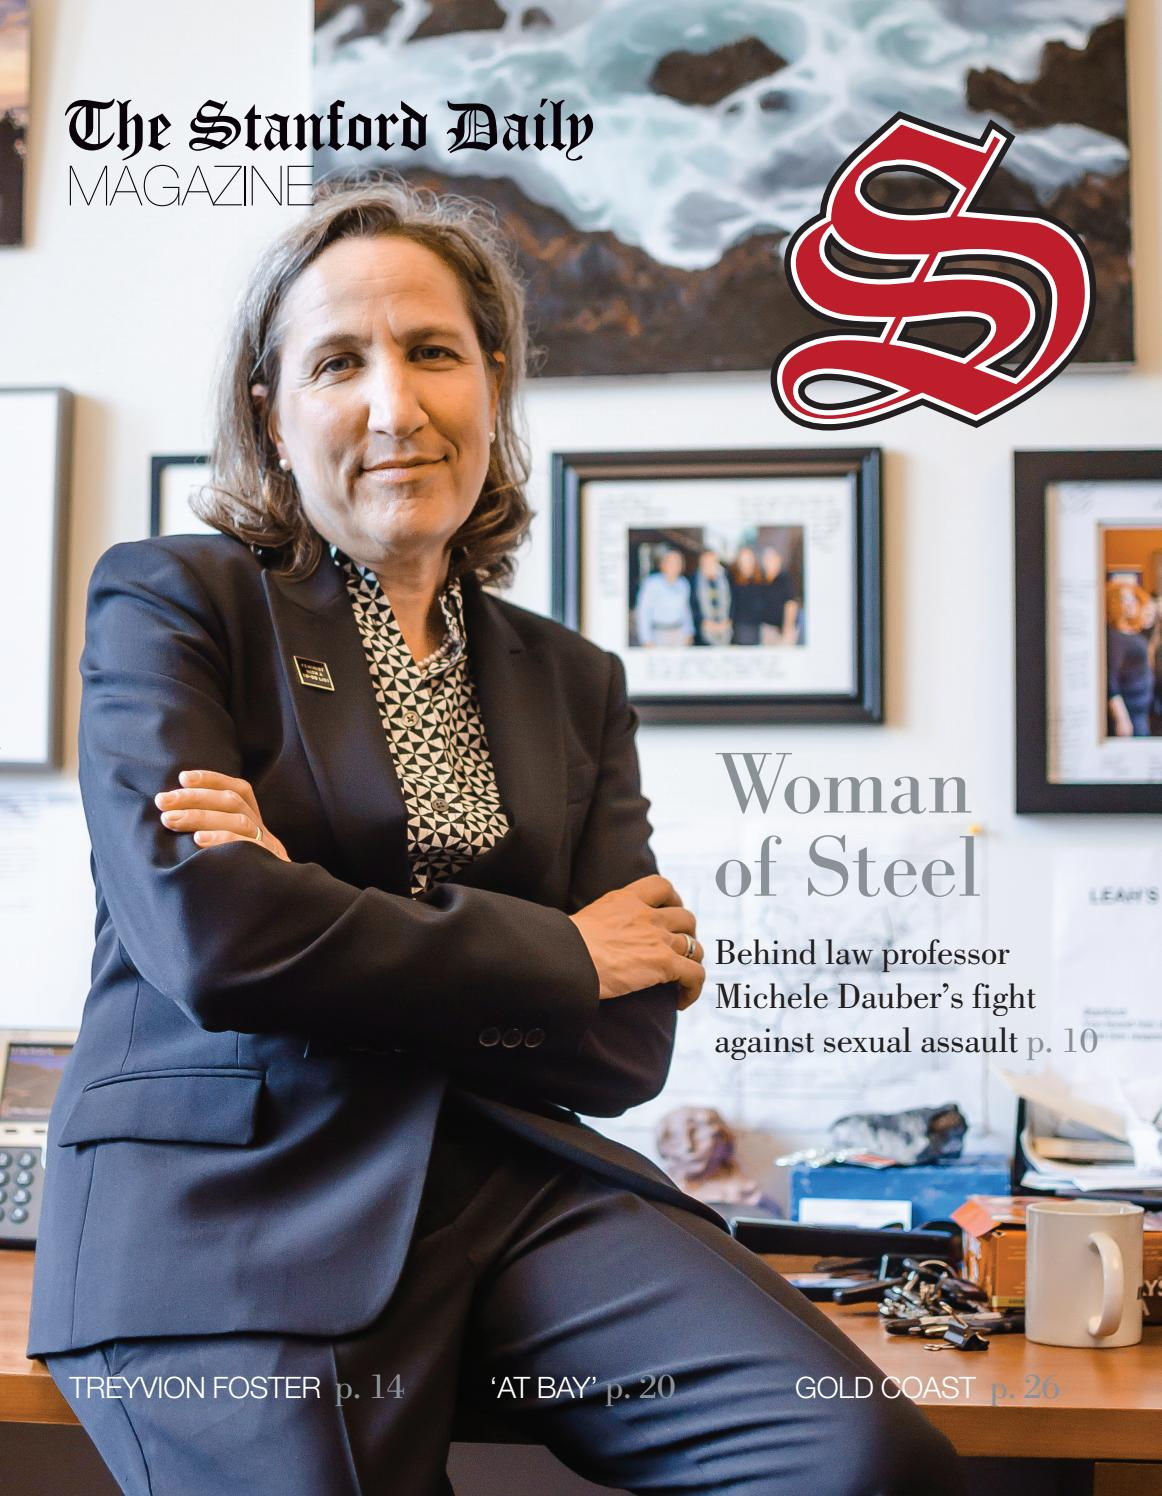 d9155e707 The Stanford Daily Magazine Vol. I Issue 1 (09.26.16) by The Stanford Daily  - issuu